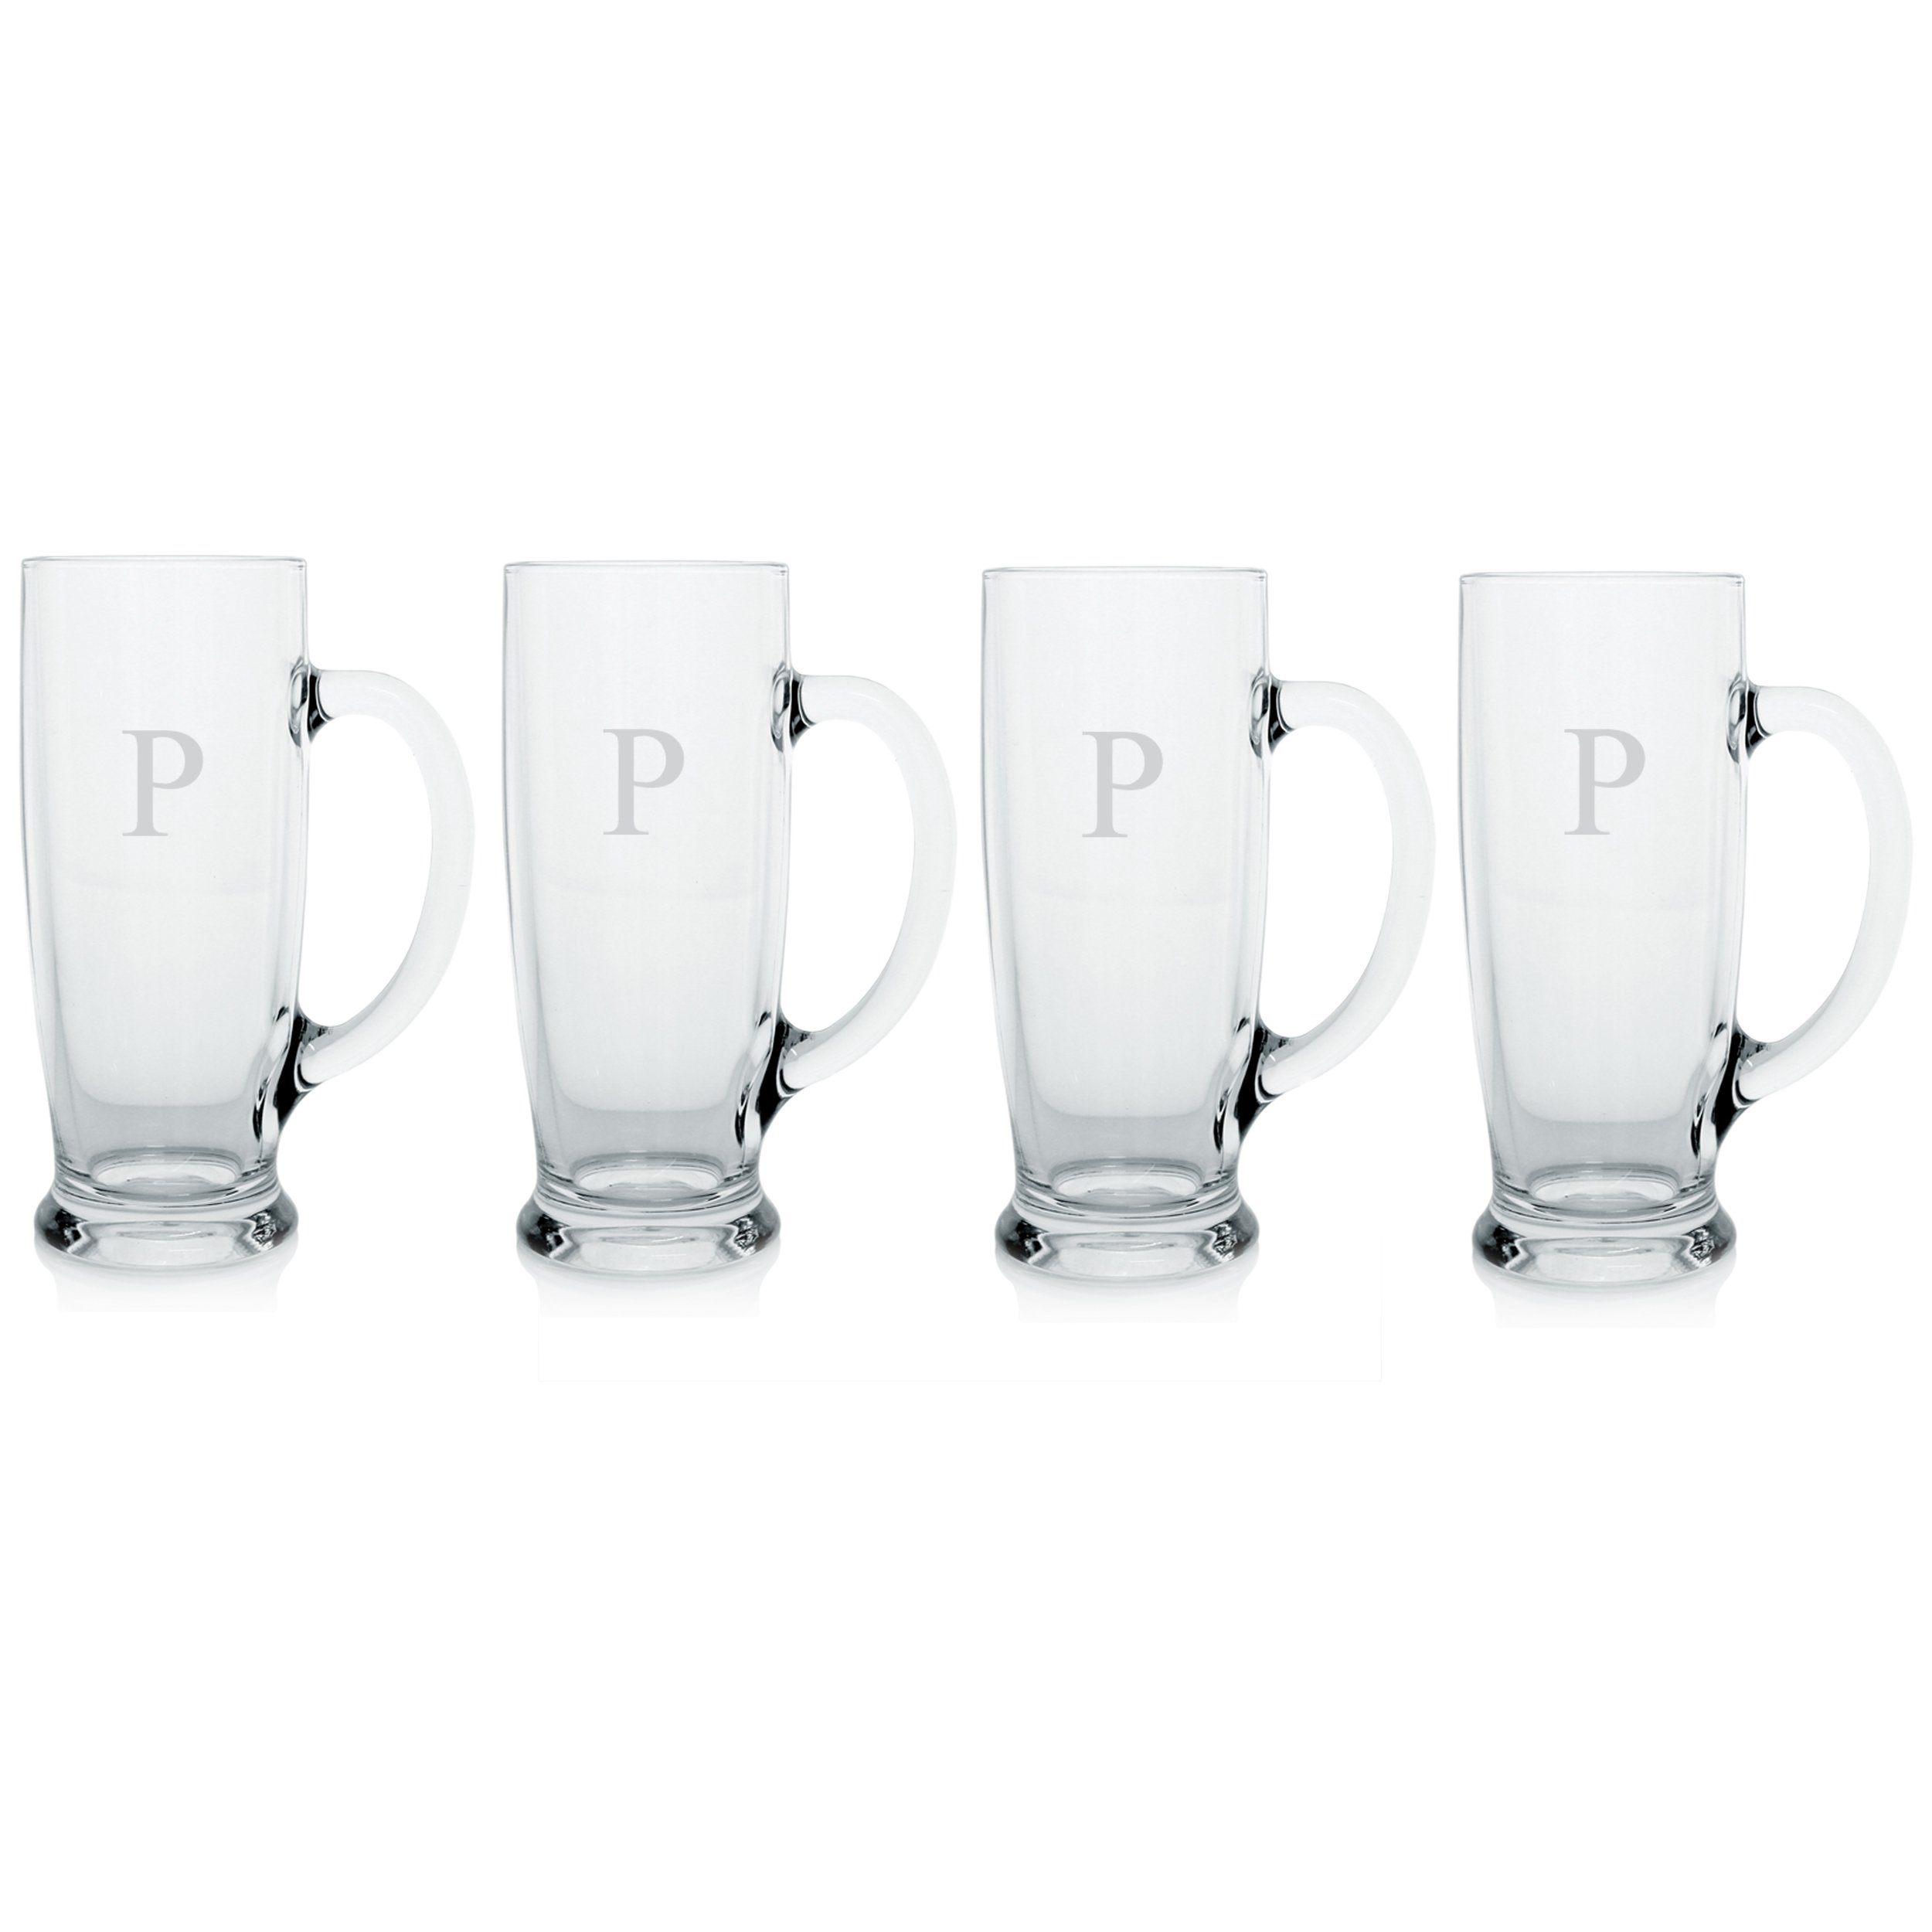 Cathy's Concepts Personalized Craft Beer Mugs, Set of 4, Letter P